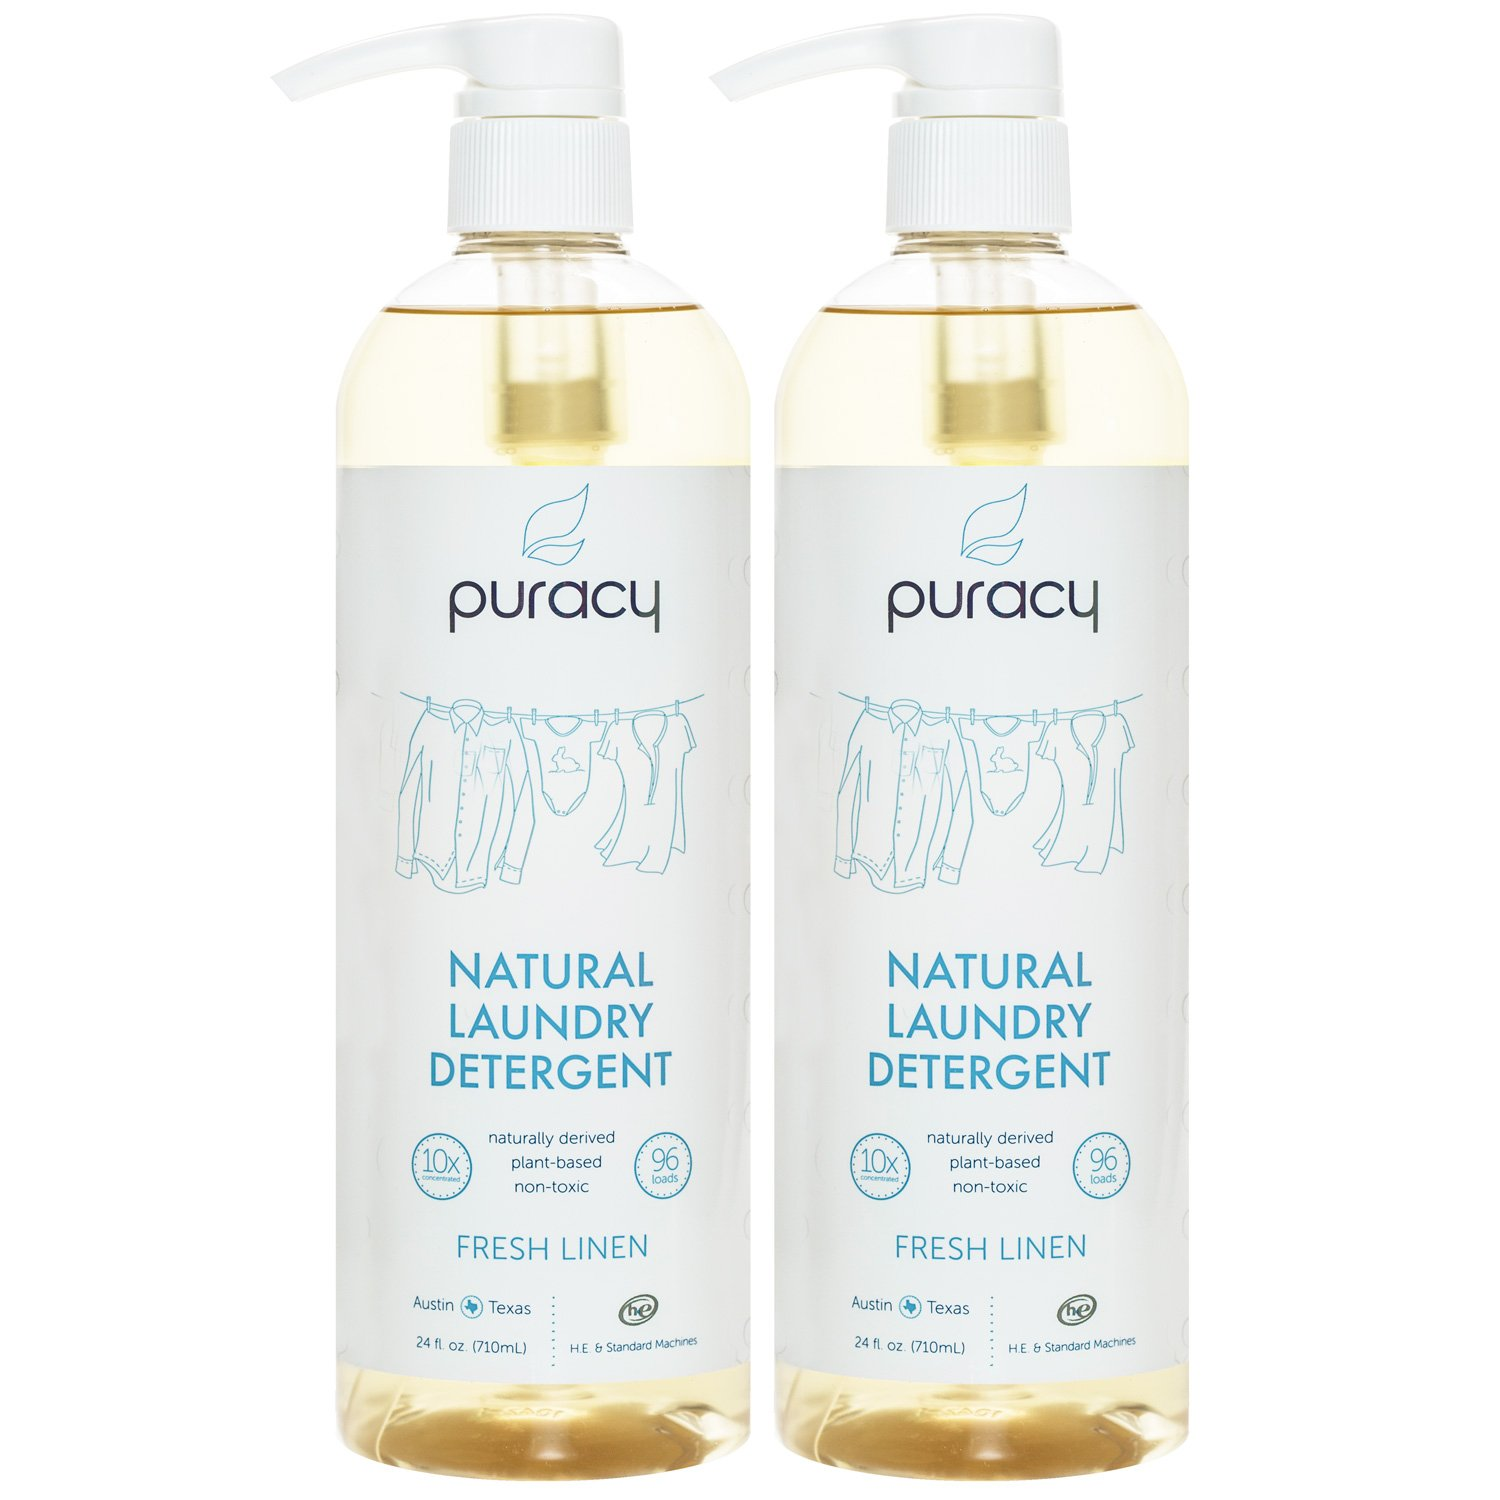 Puracy Natural Liquid Laundry Detergent [192 Loads], Sulfate-Free, Hypoallergenic Clothing Soap, Powered by Plant-Based Enzymes, Fresh Linen, [Set of 2 Pump Bottles]